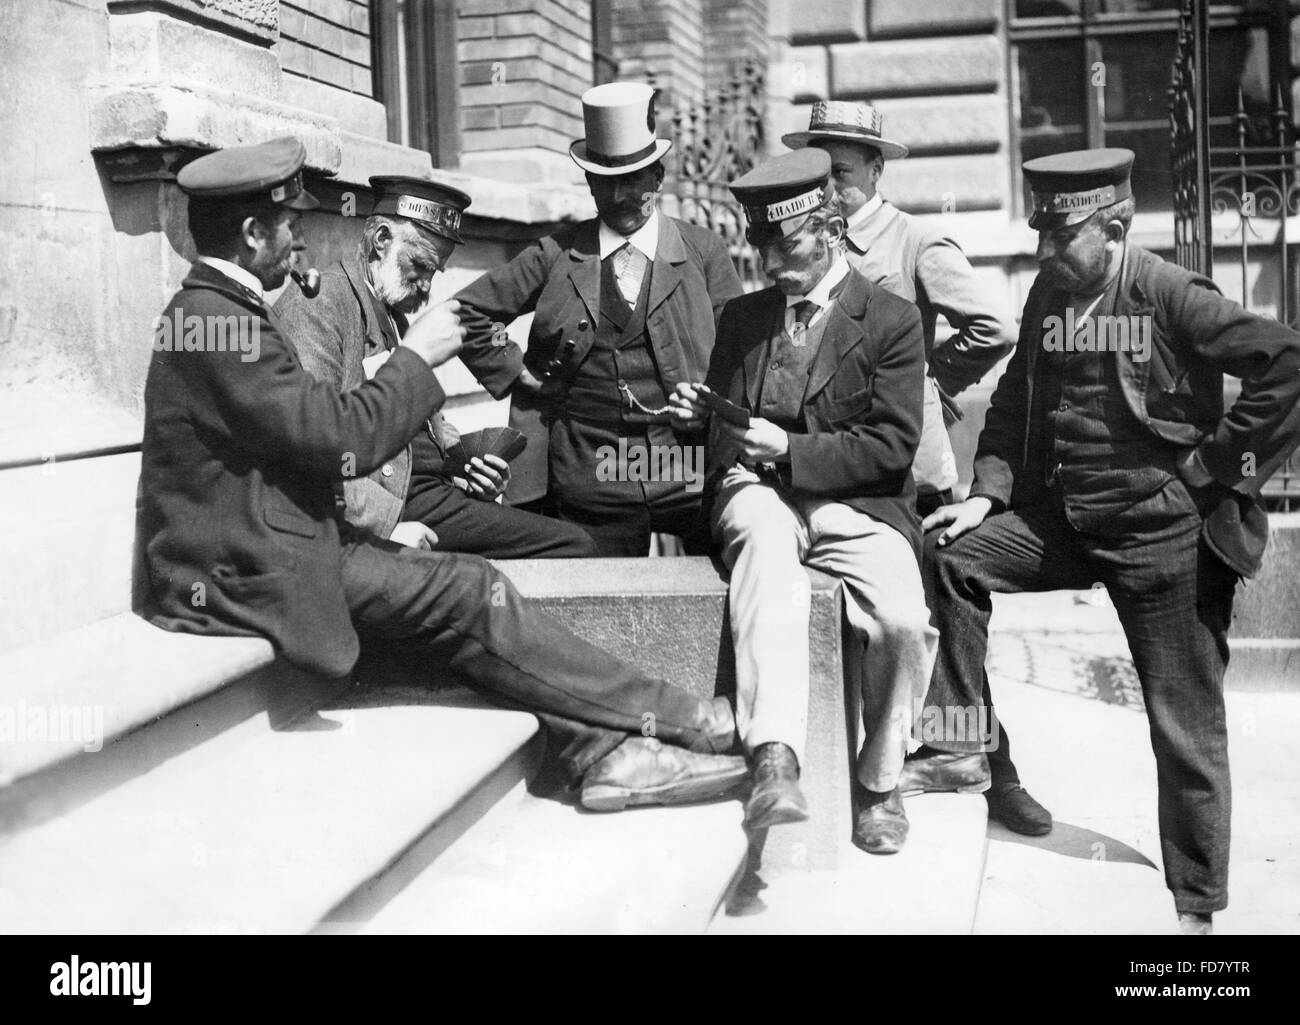 Porters playing cards in front of the south entrance to the Central Station in Munich, 1906 - Stock Image